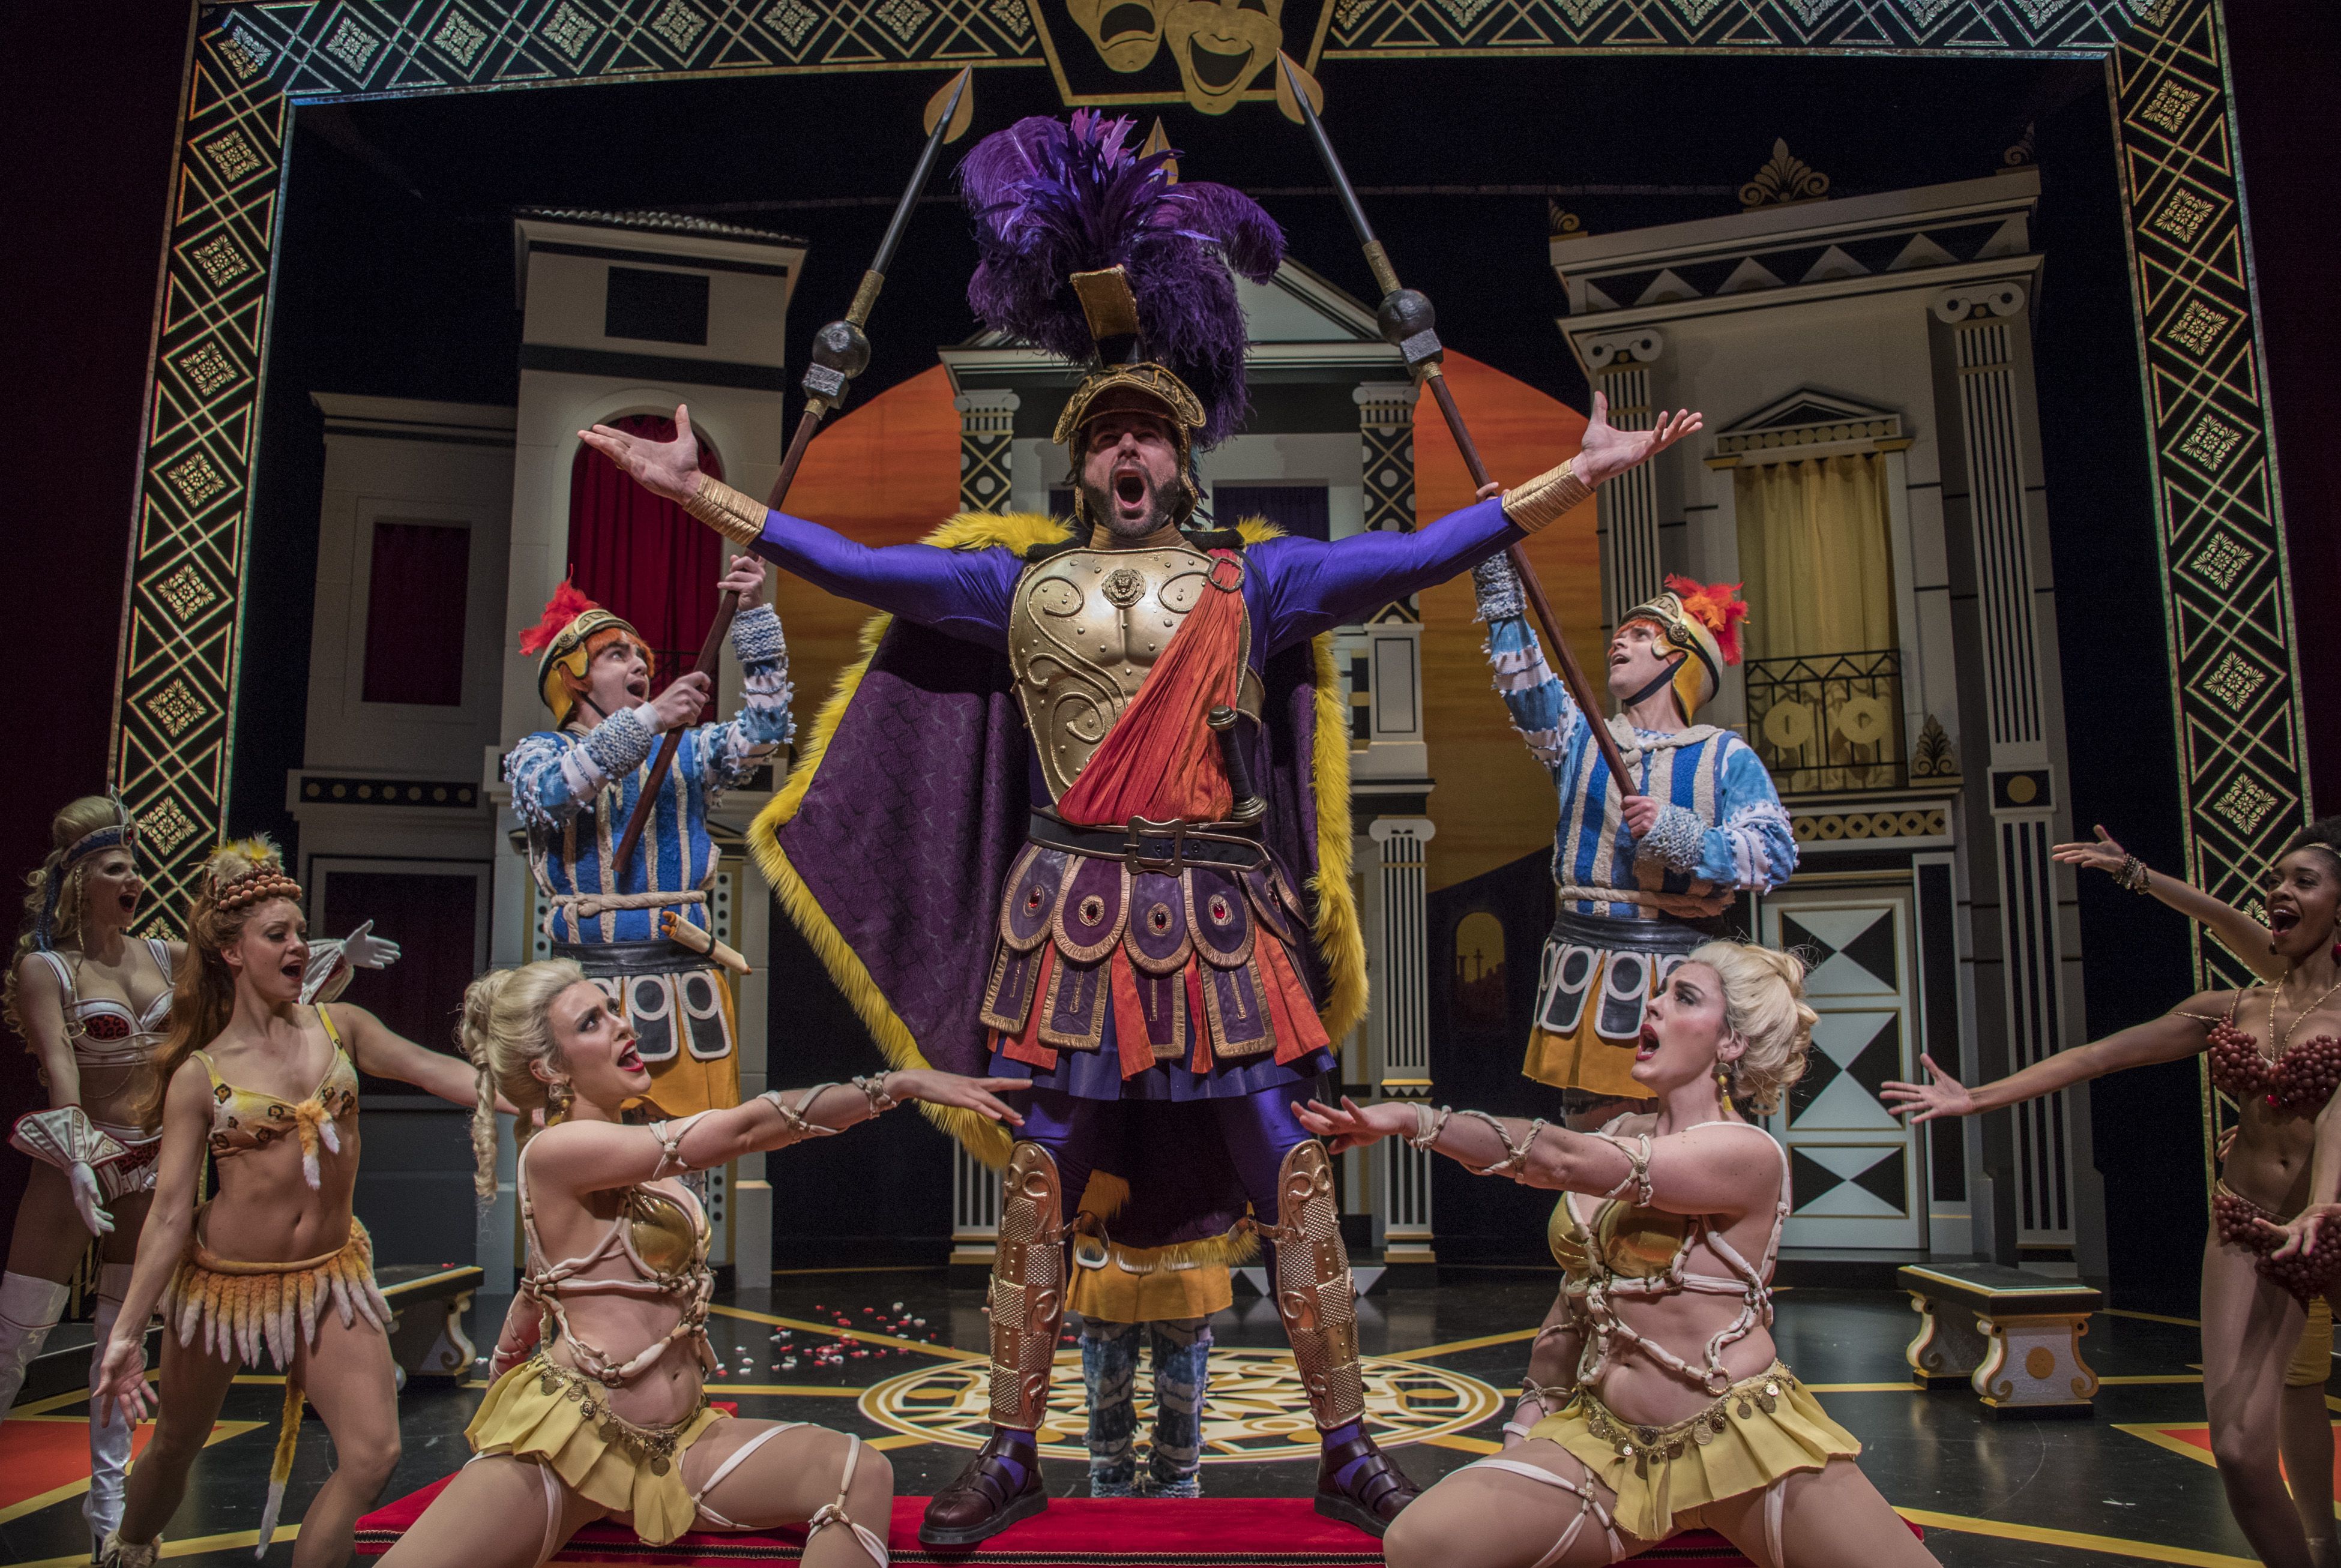 A funny scene from the musical 'A Funny Thing Happened on the Way to the Forum' directed and choreographed by Pittsburgh Public Theater's Artistic Director Ted Pappas. The singing warrior, Miles Gloriosus, is Allan Snyder. Photo: Michael Henninger.